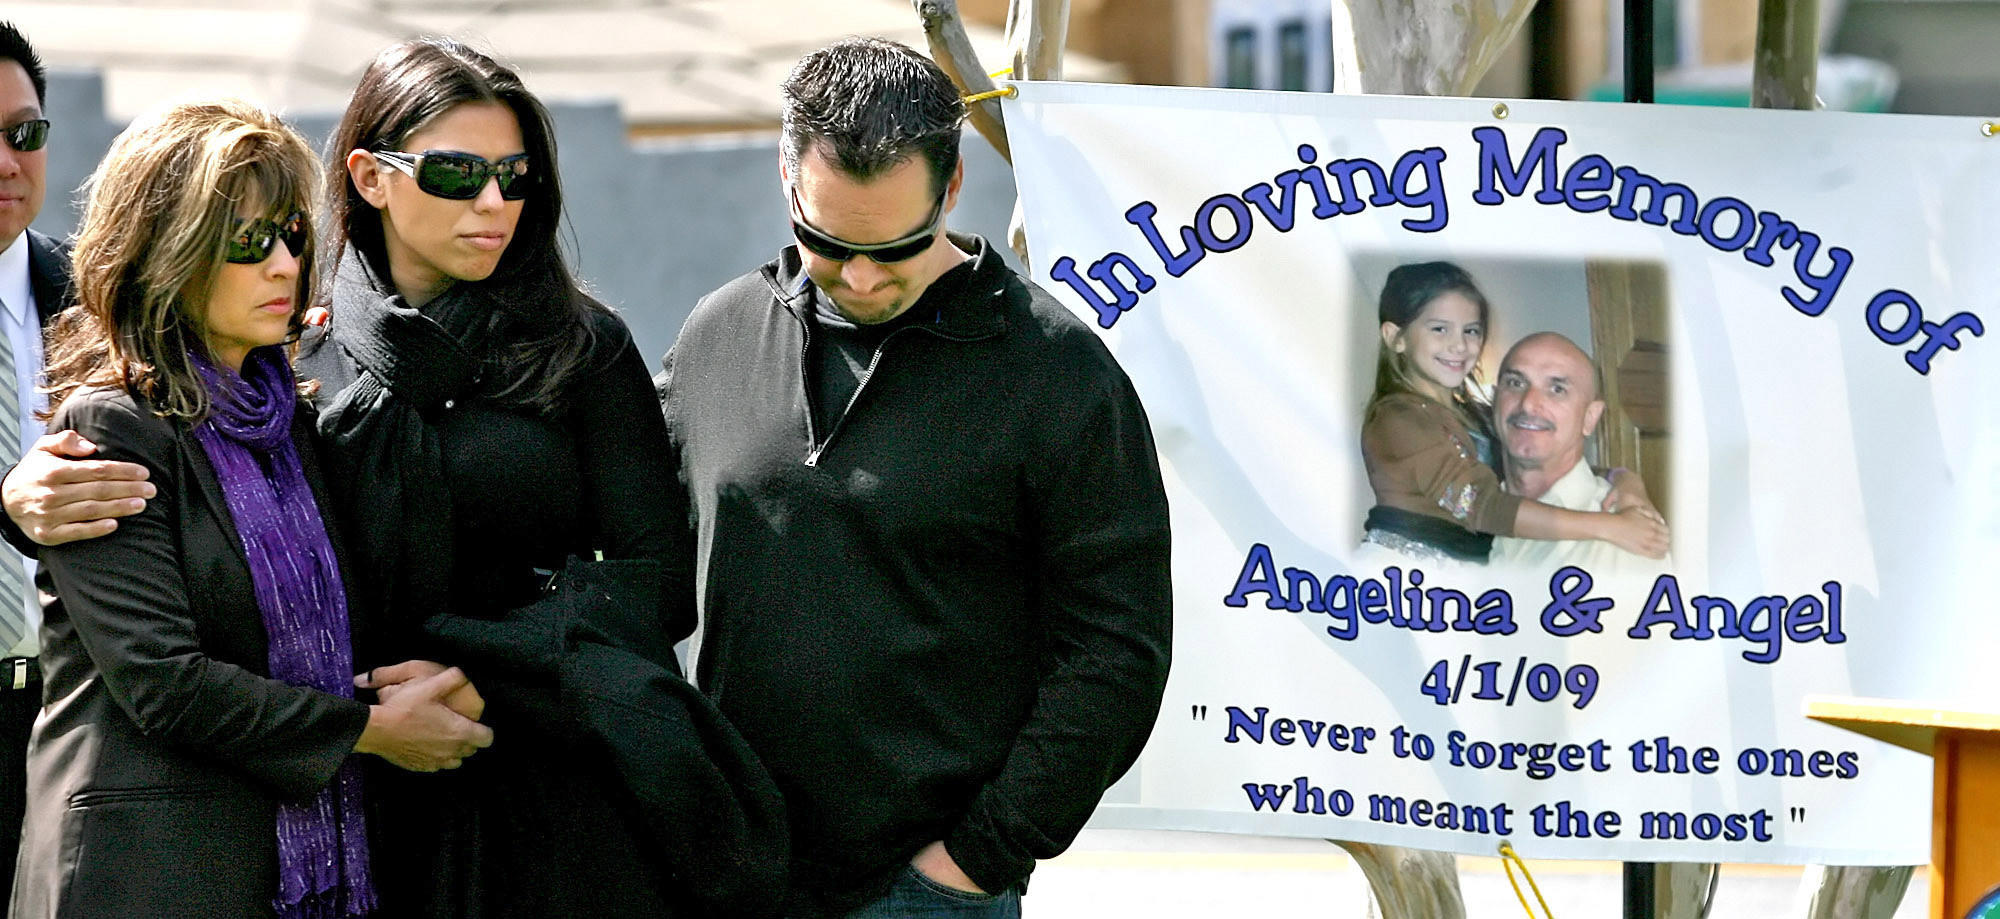 From left, Yanette Posca, her daughter Gianna Cereghino and daughter's husband Joe Cereghino during a memorial service to dedicate a rose garden for Posca's husband and youngest daughter at Glenola Park in La Cañada Flintridge on Thursday, April 1, 2010, on the 1-year anniversary of a fatal multi-vehicle crash caused by a runaway big rig on Angeles Crest Highway at Foothill Blvd. that took the lives of Posca's husband Angel and daughter Angelina, who was 12 when she died. A private service will be held to mark the five-year anniversary next week.